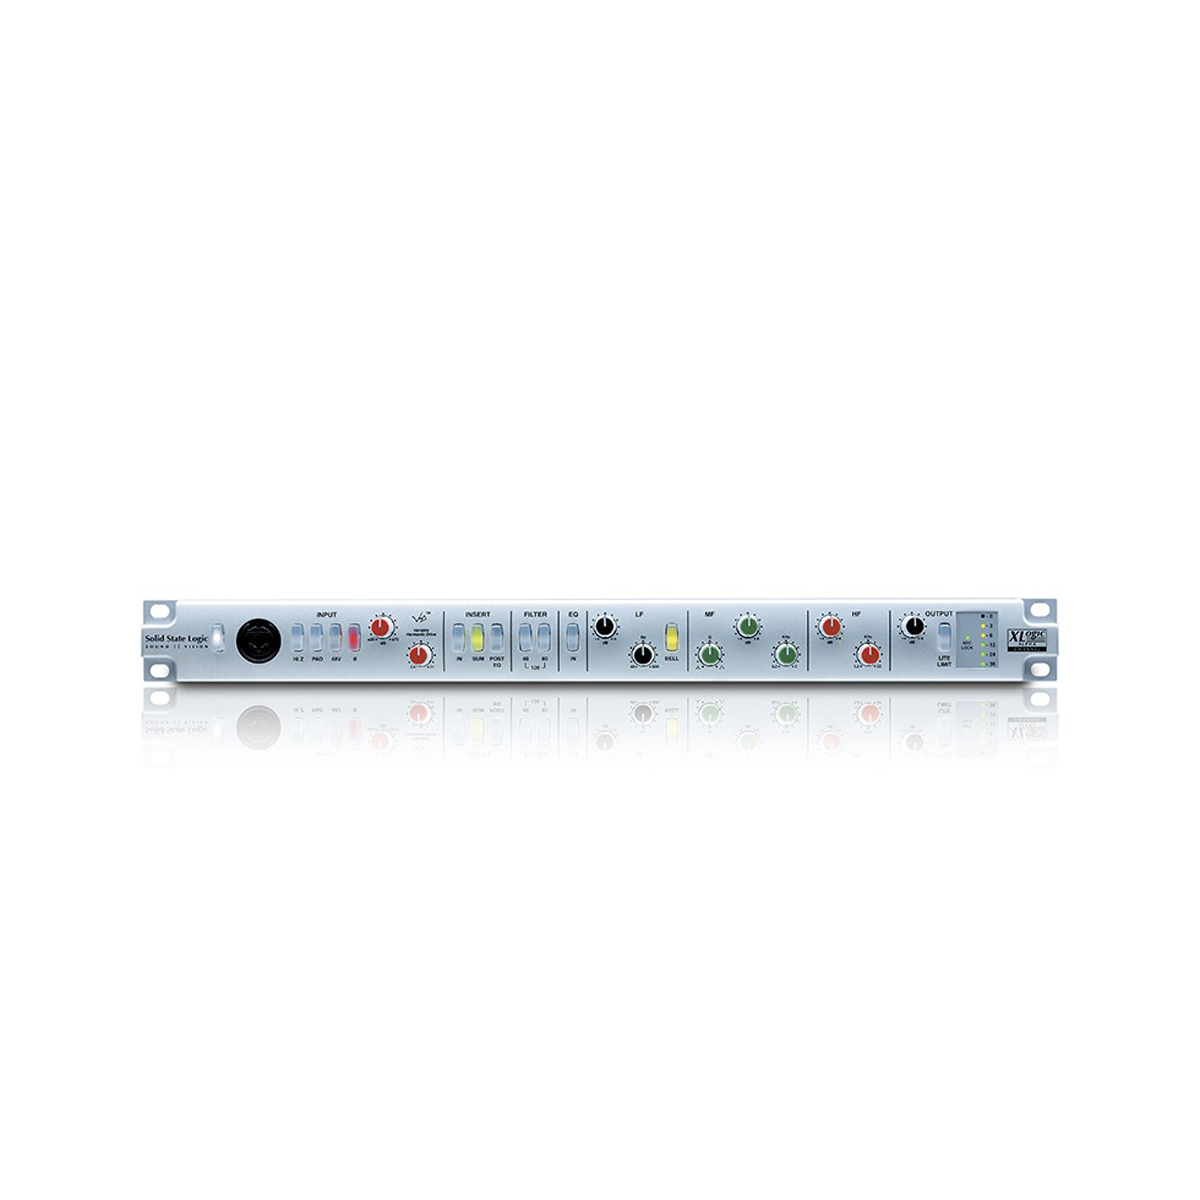 ssl alpha channel with vhd mic preamp sonic circus. Black Bedroom Furniture Sets. Home Design Ideas